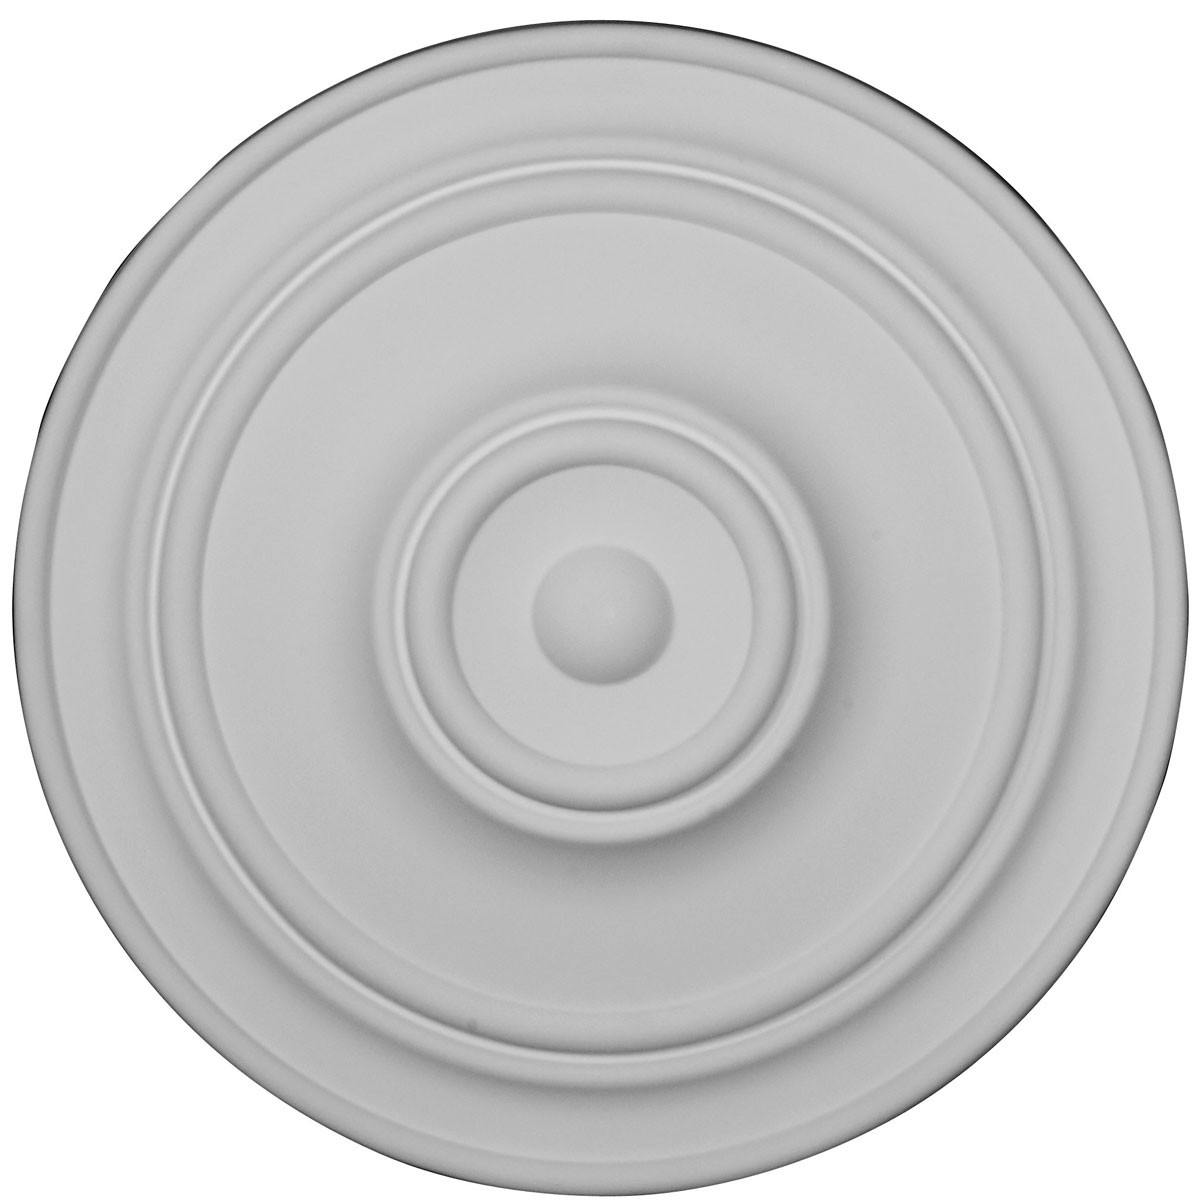 """EM-CM22CL - 21 7/8""""OD x 2 3/8""""P Classic Ceiling Medallion (For Canopies up to 5 1/2"""")"""